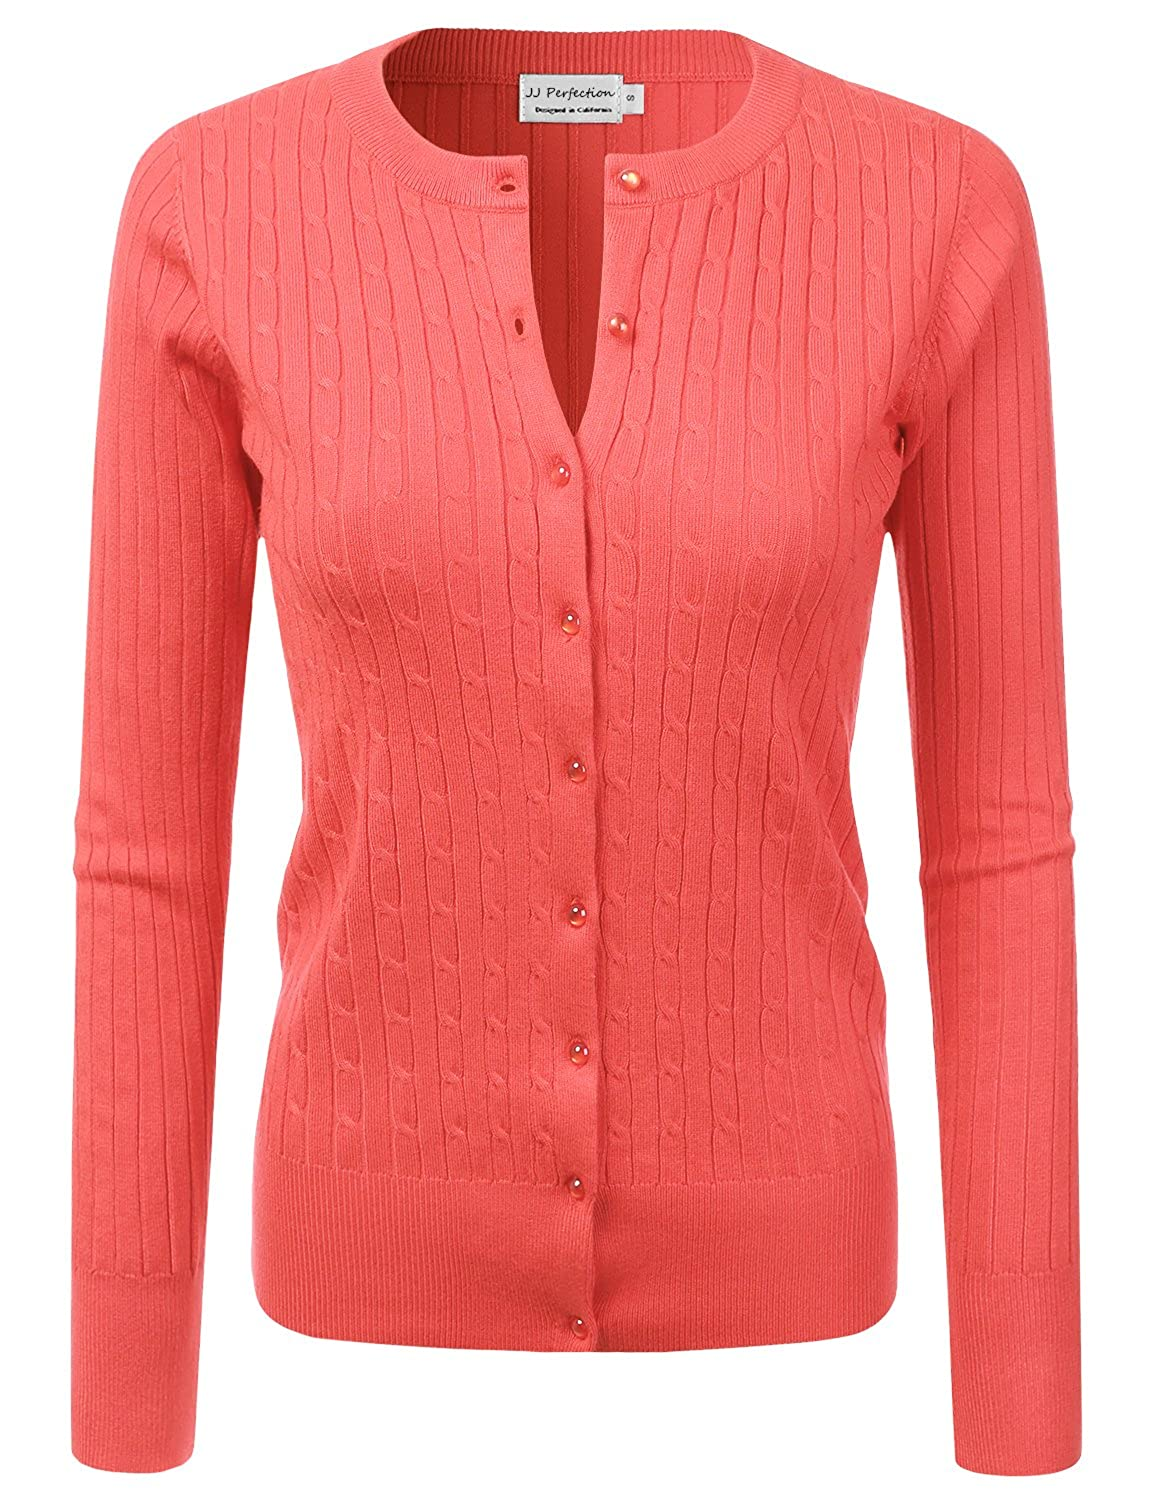 JJ Perfection Women s Long Sleeve Crew Neck Button Down Twist Knit Cardigan  Coral 1X at Amazon Women s Clothing store  e8a07300b